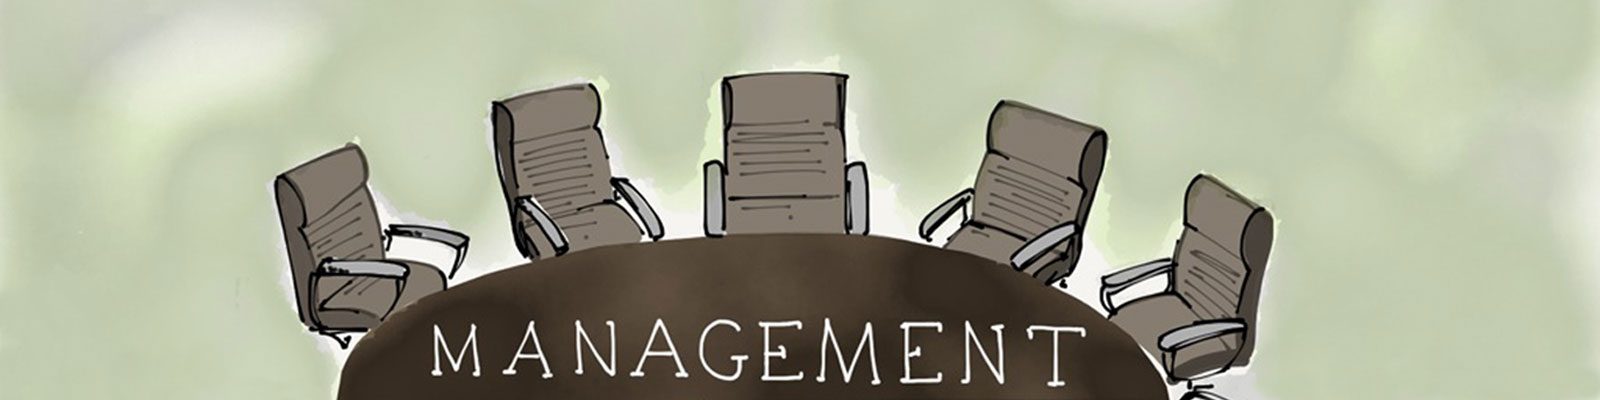 management-opt